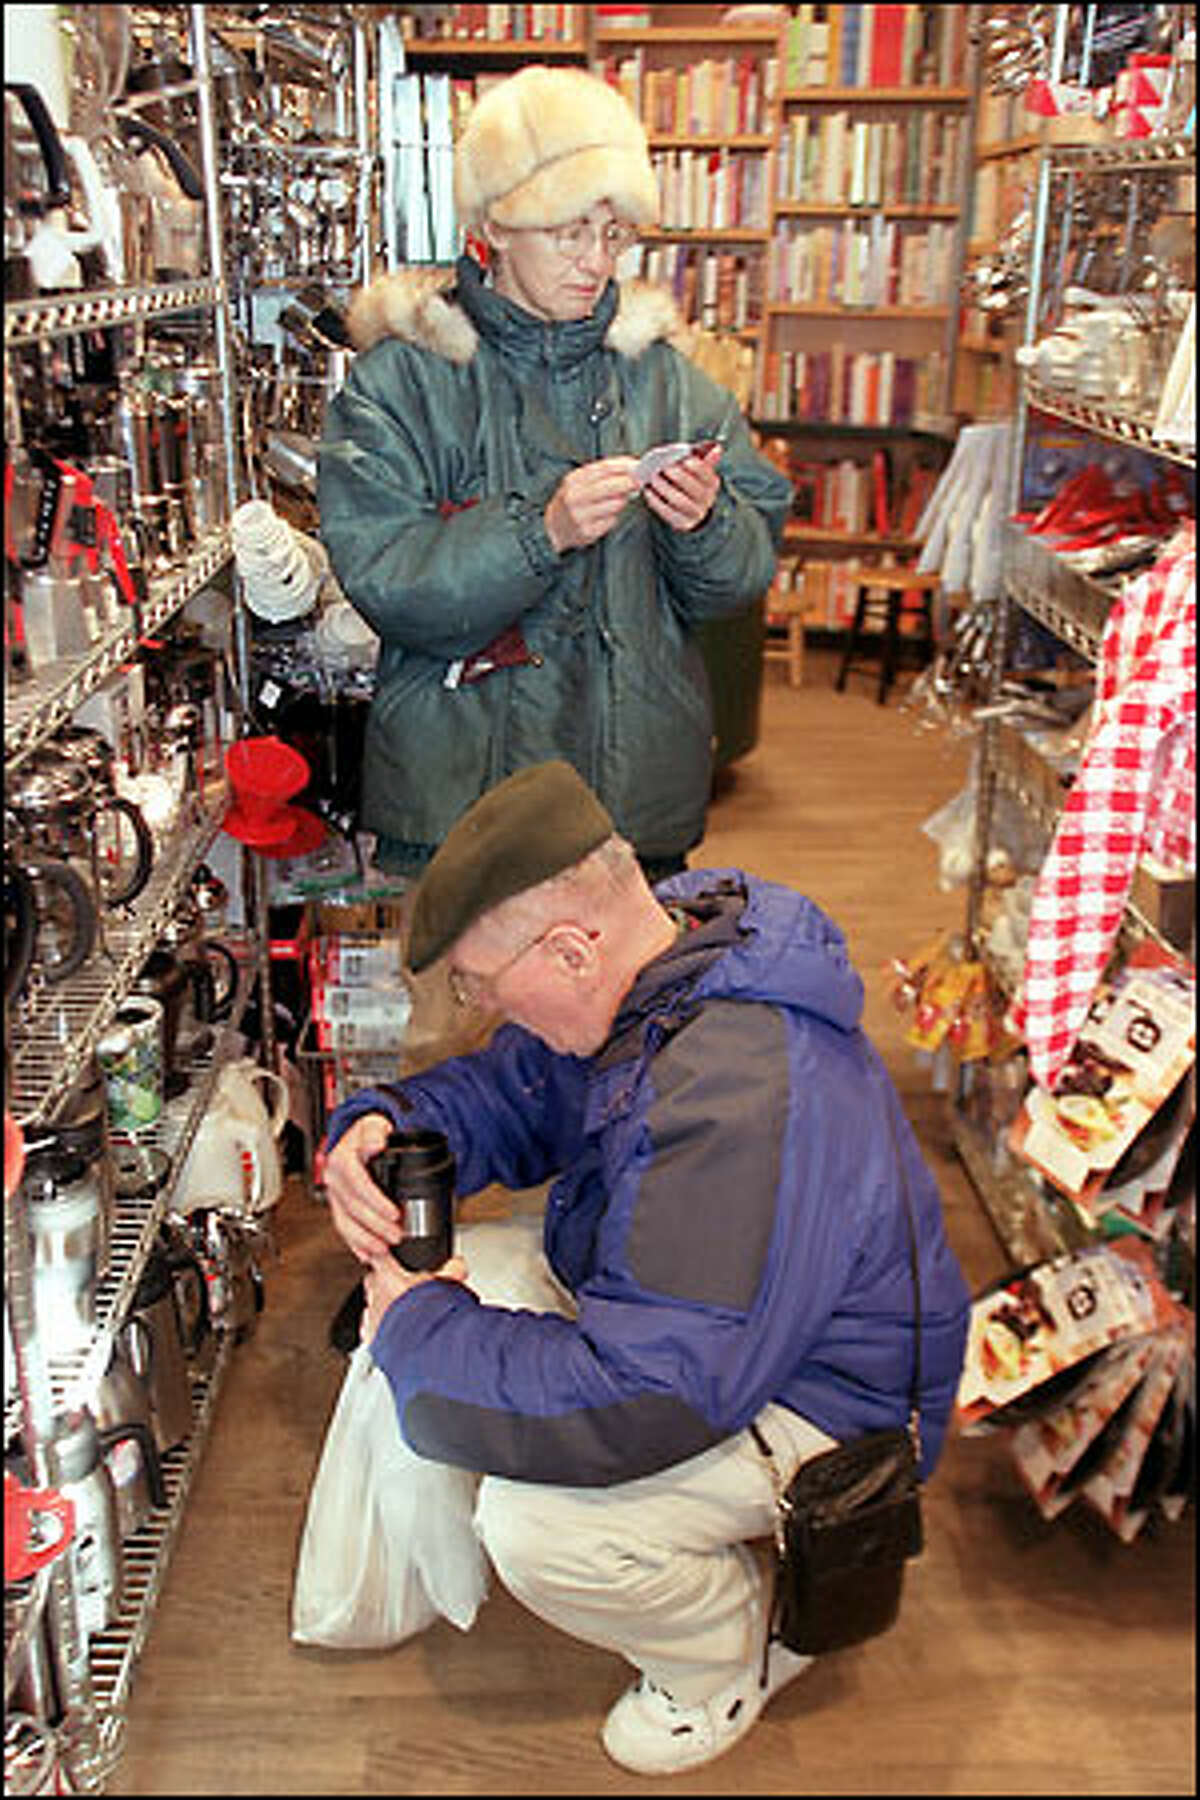 Ray and Marguerite Butz of Michigan check out the Sur La Table store in Pike Place Market. They say they go to the store when they're in Seattle and find things they can't find anywhere else. The business was founded by Shirley Collins in 1972.